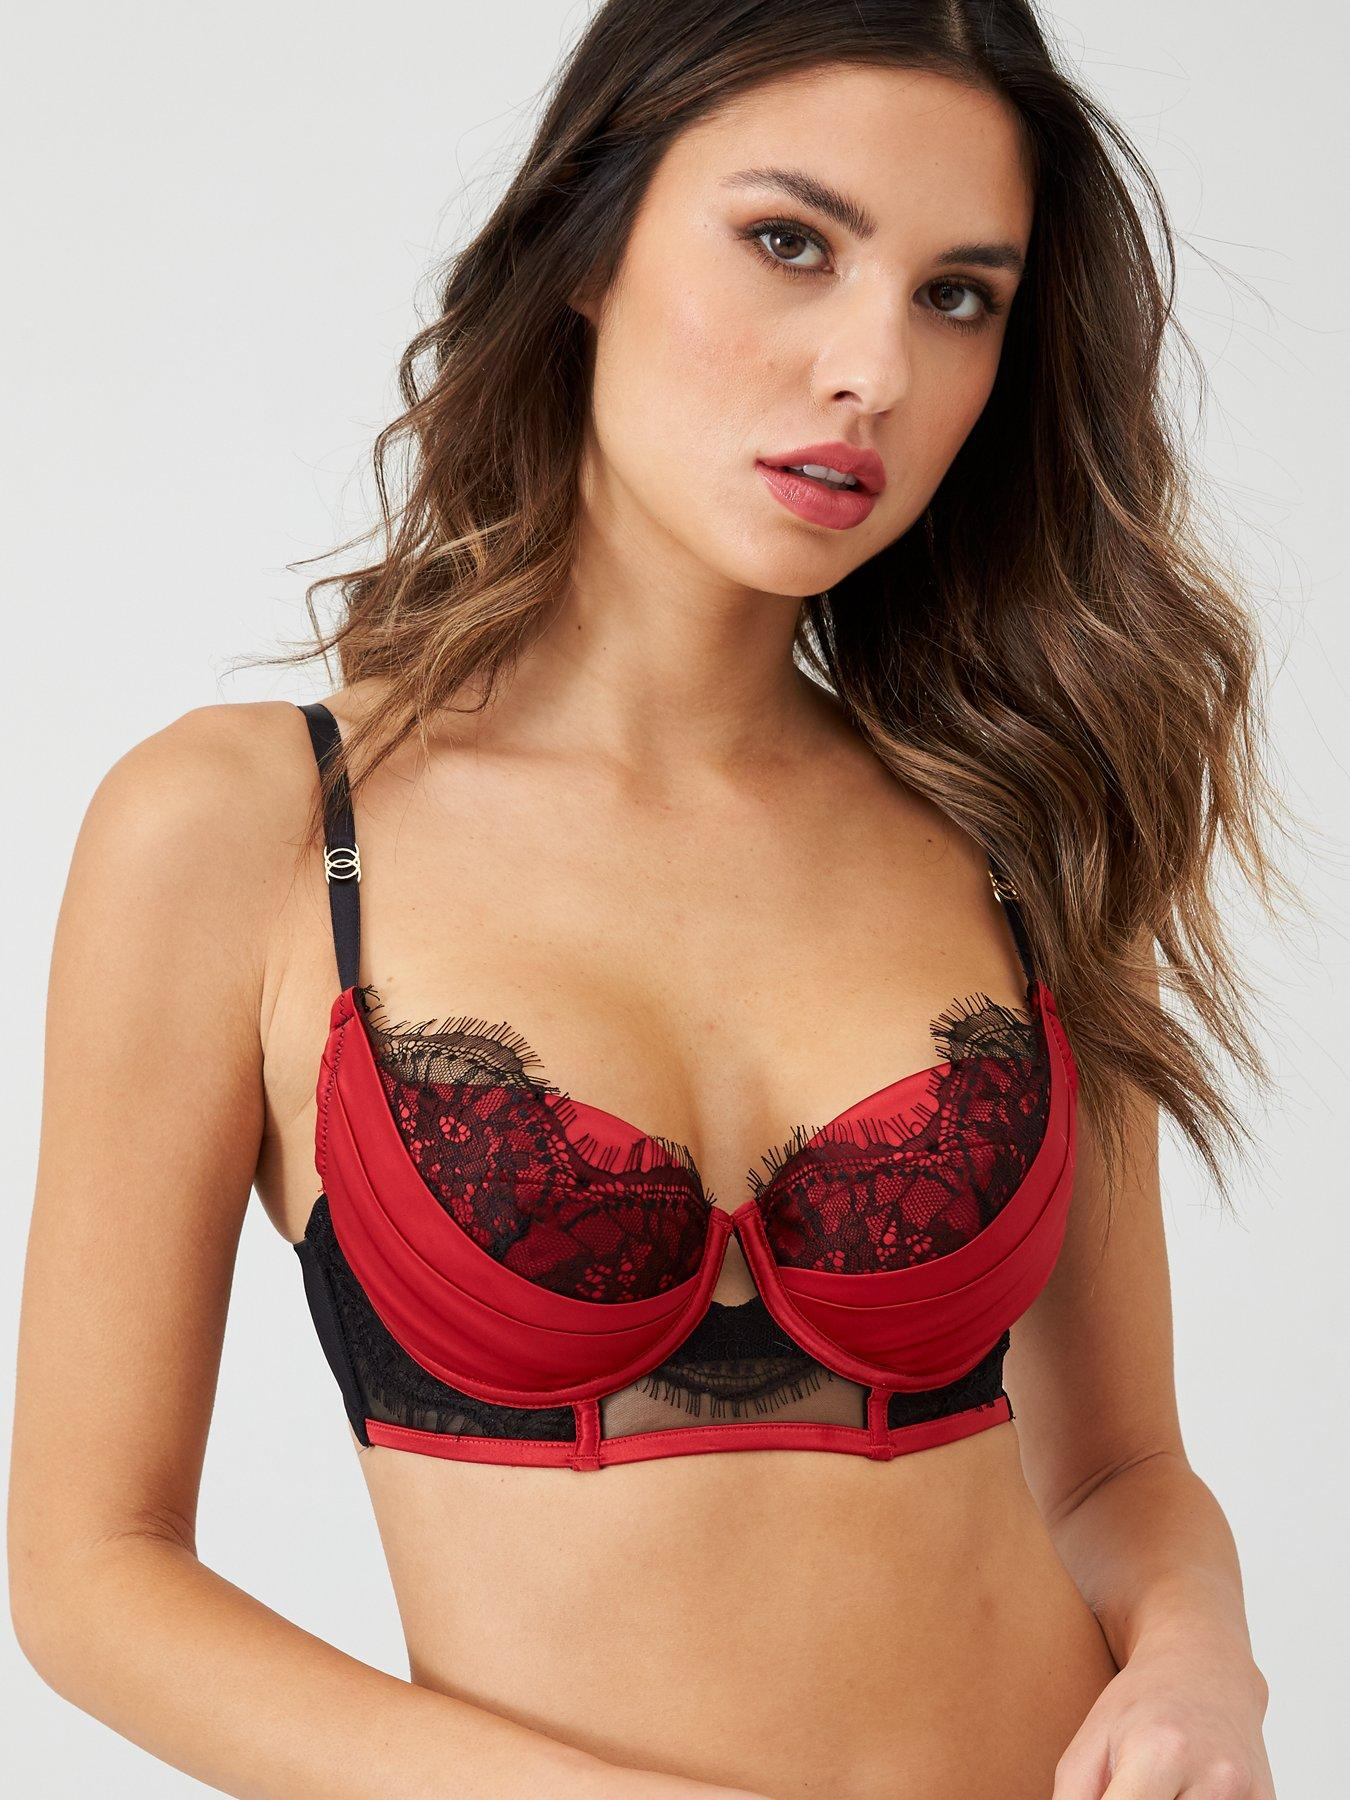 Ann Summers Adalicia Red Balcony Bra Size 34D *In Stock*